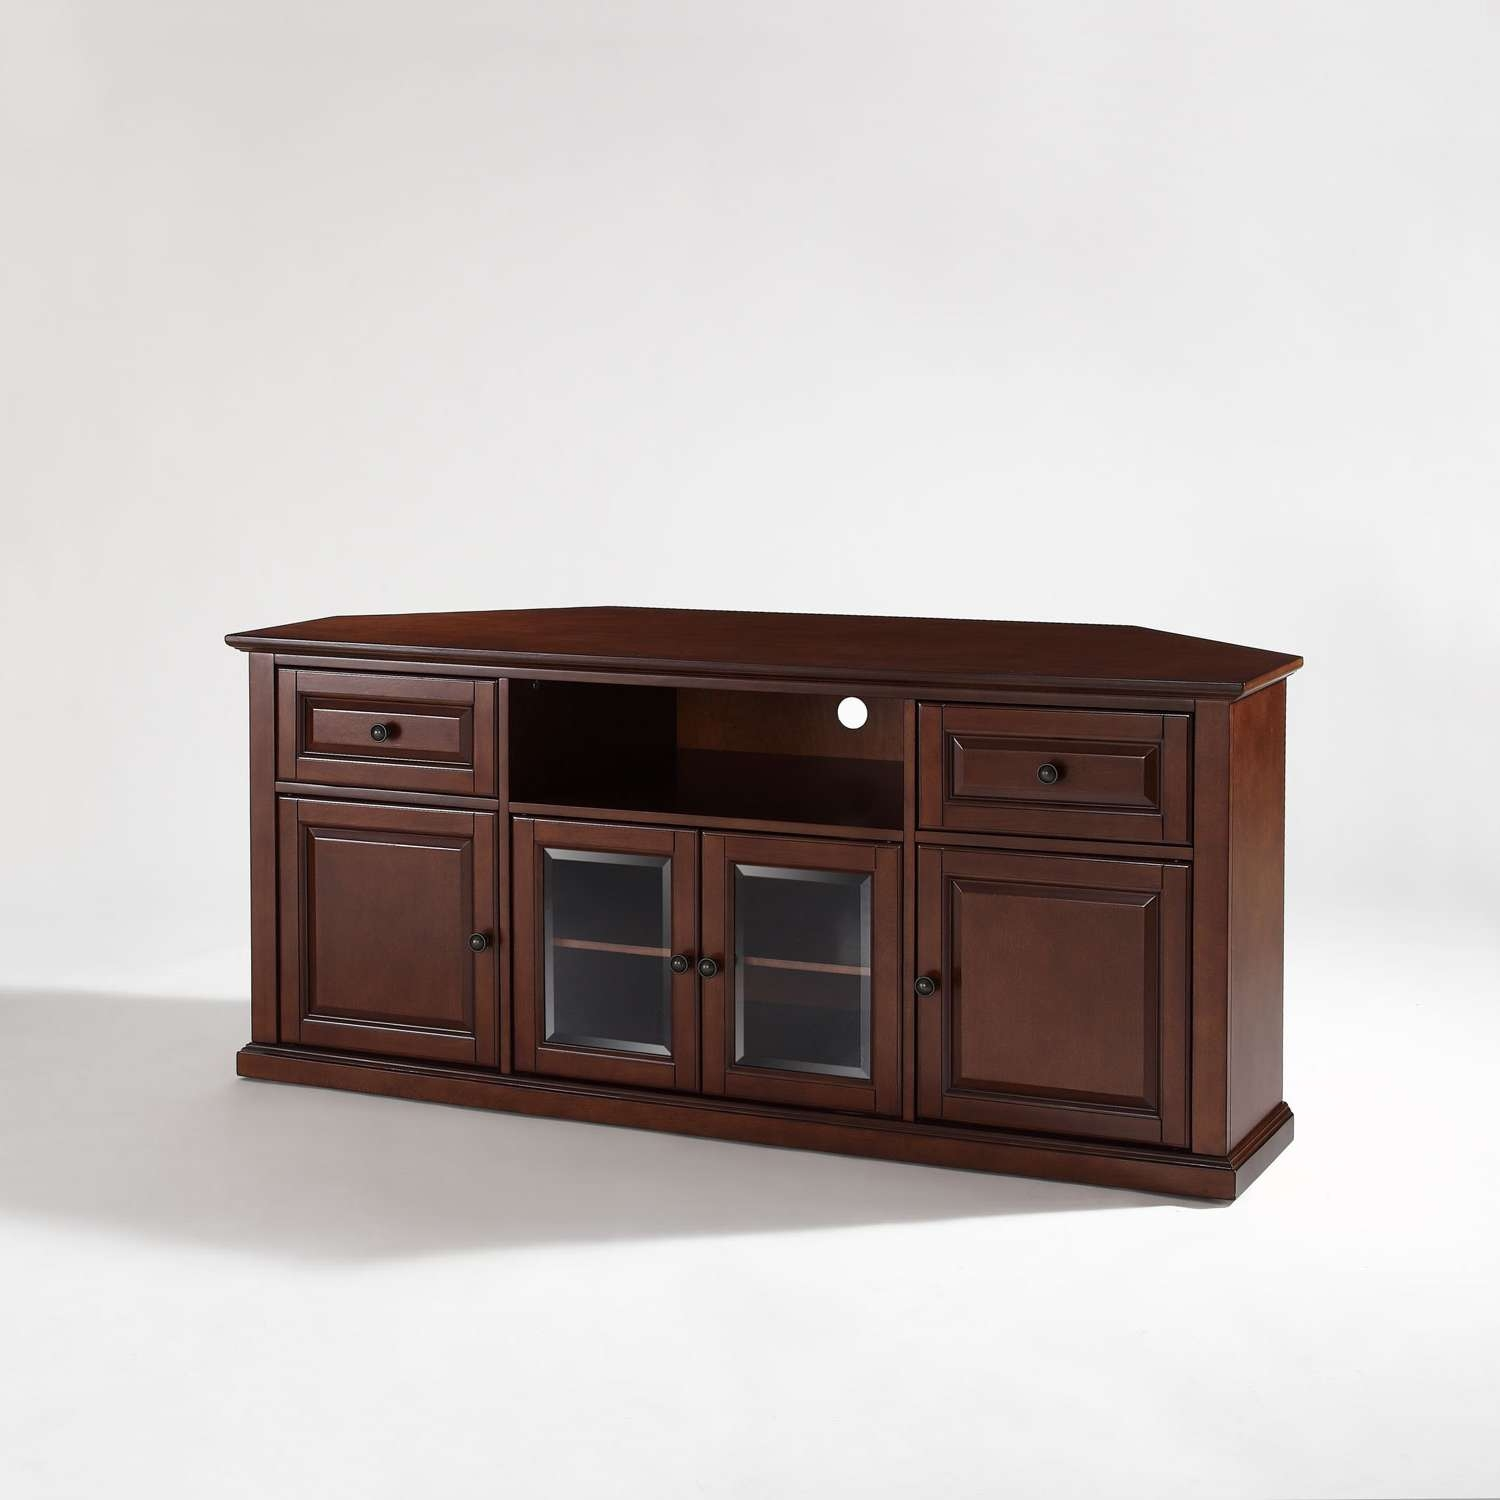 60 Inch Corner Tv Stand In Vintage Mahogany Crosley Furniture With Regard To Corner Tv Cabinets (View 8 of 20)